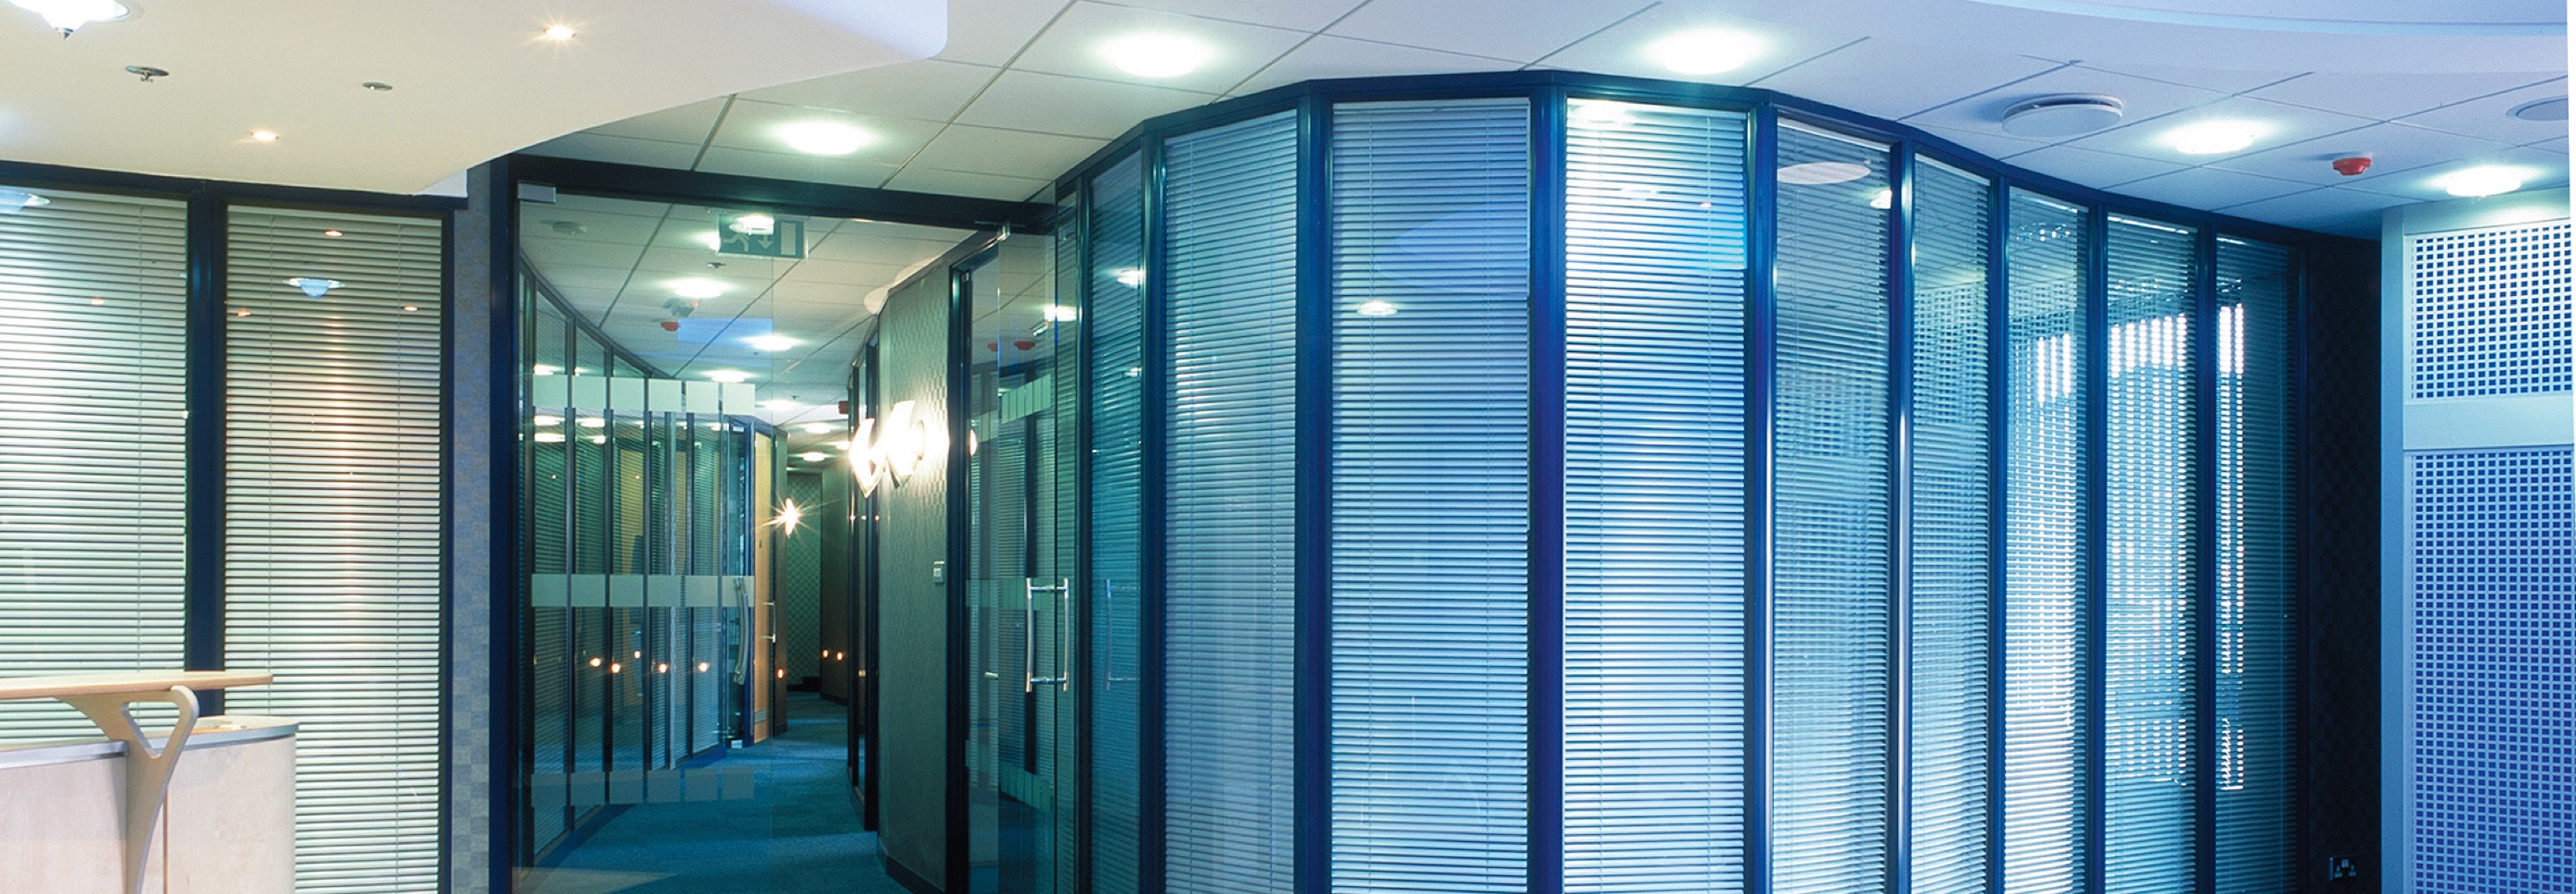 Corporate Interiors Design and Build - Management Team - curved glass partition in office